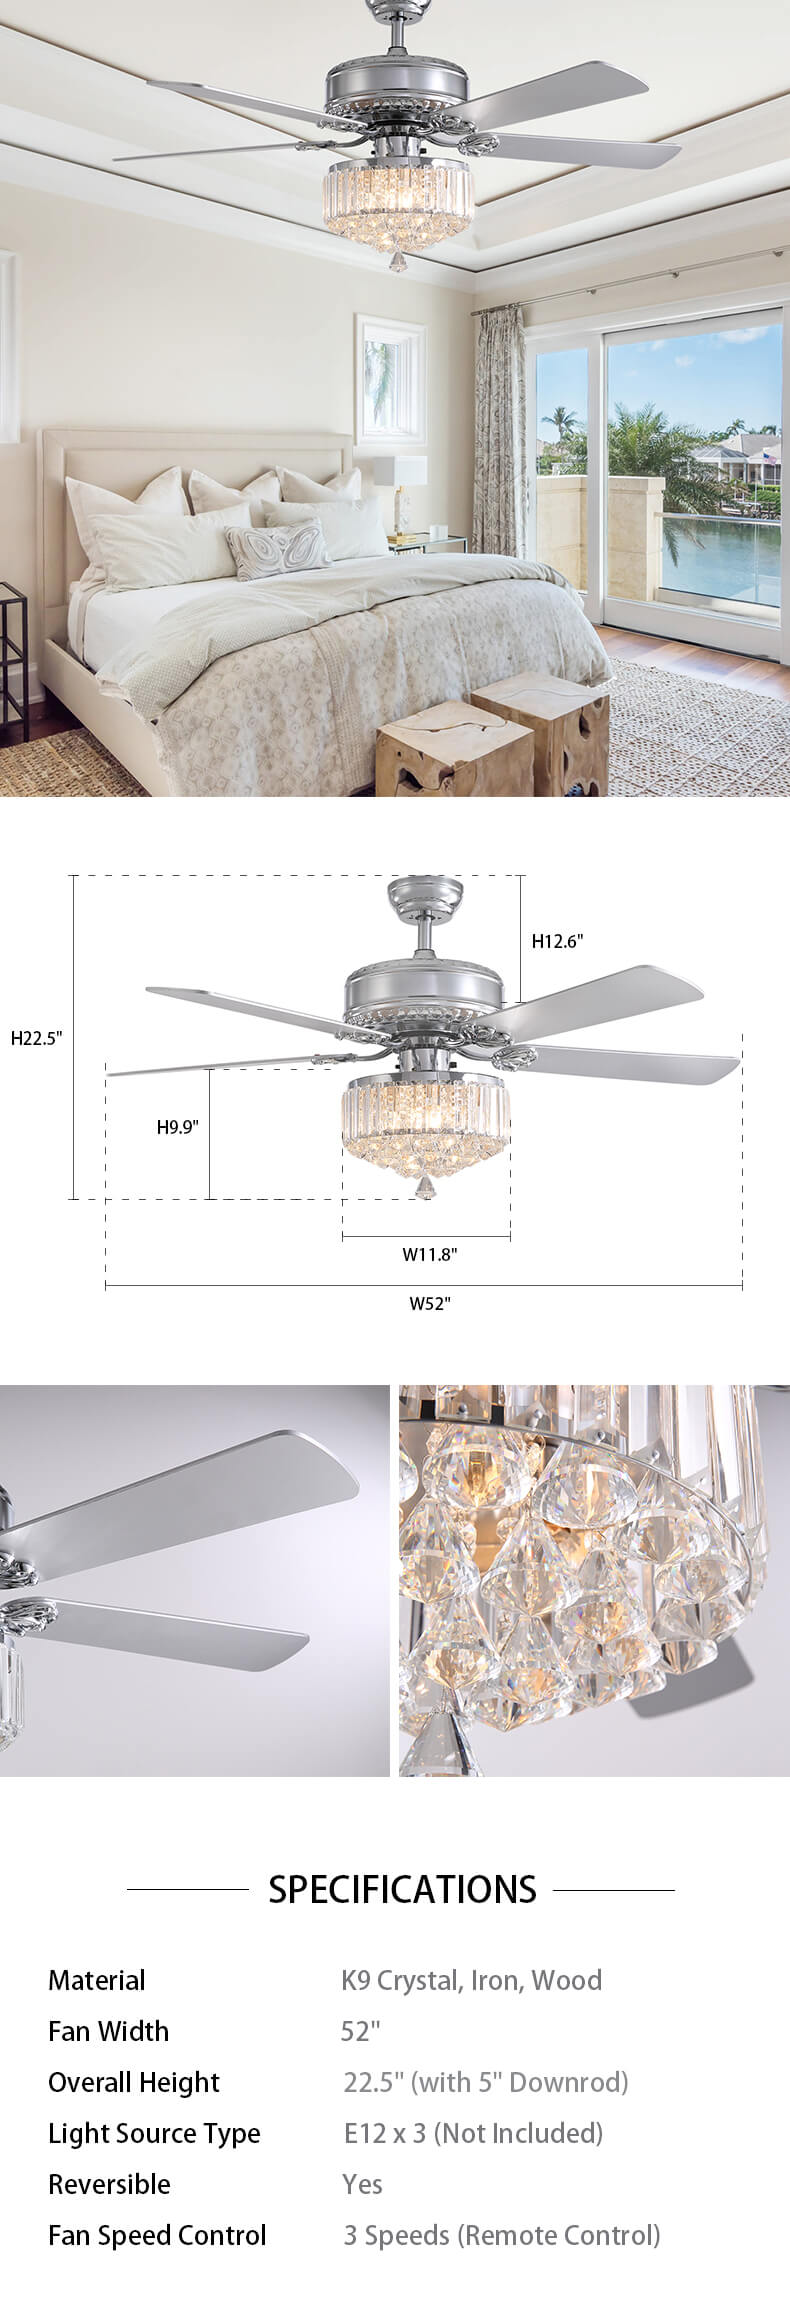 Dimension For Crystal Chandelier Fan with Reversible Blades